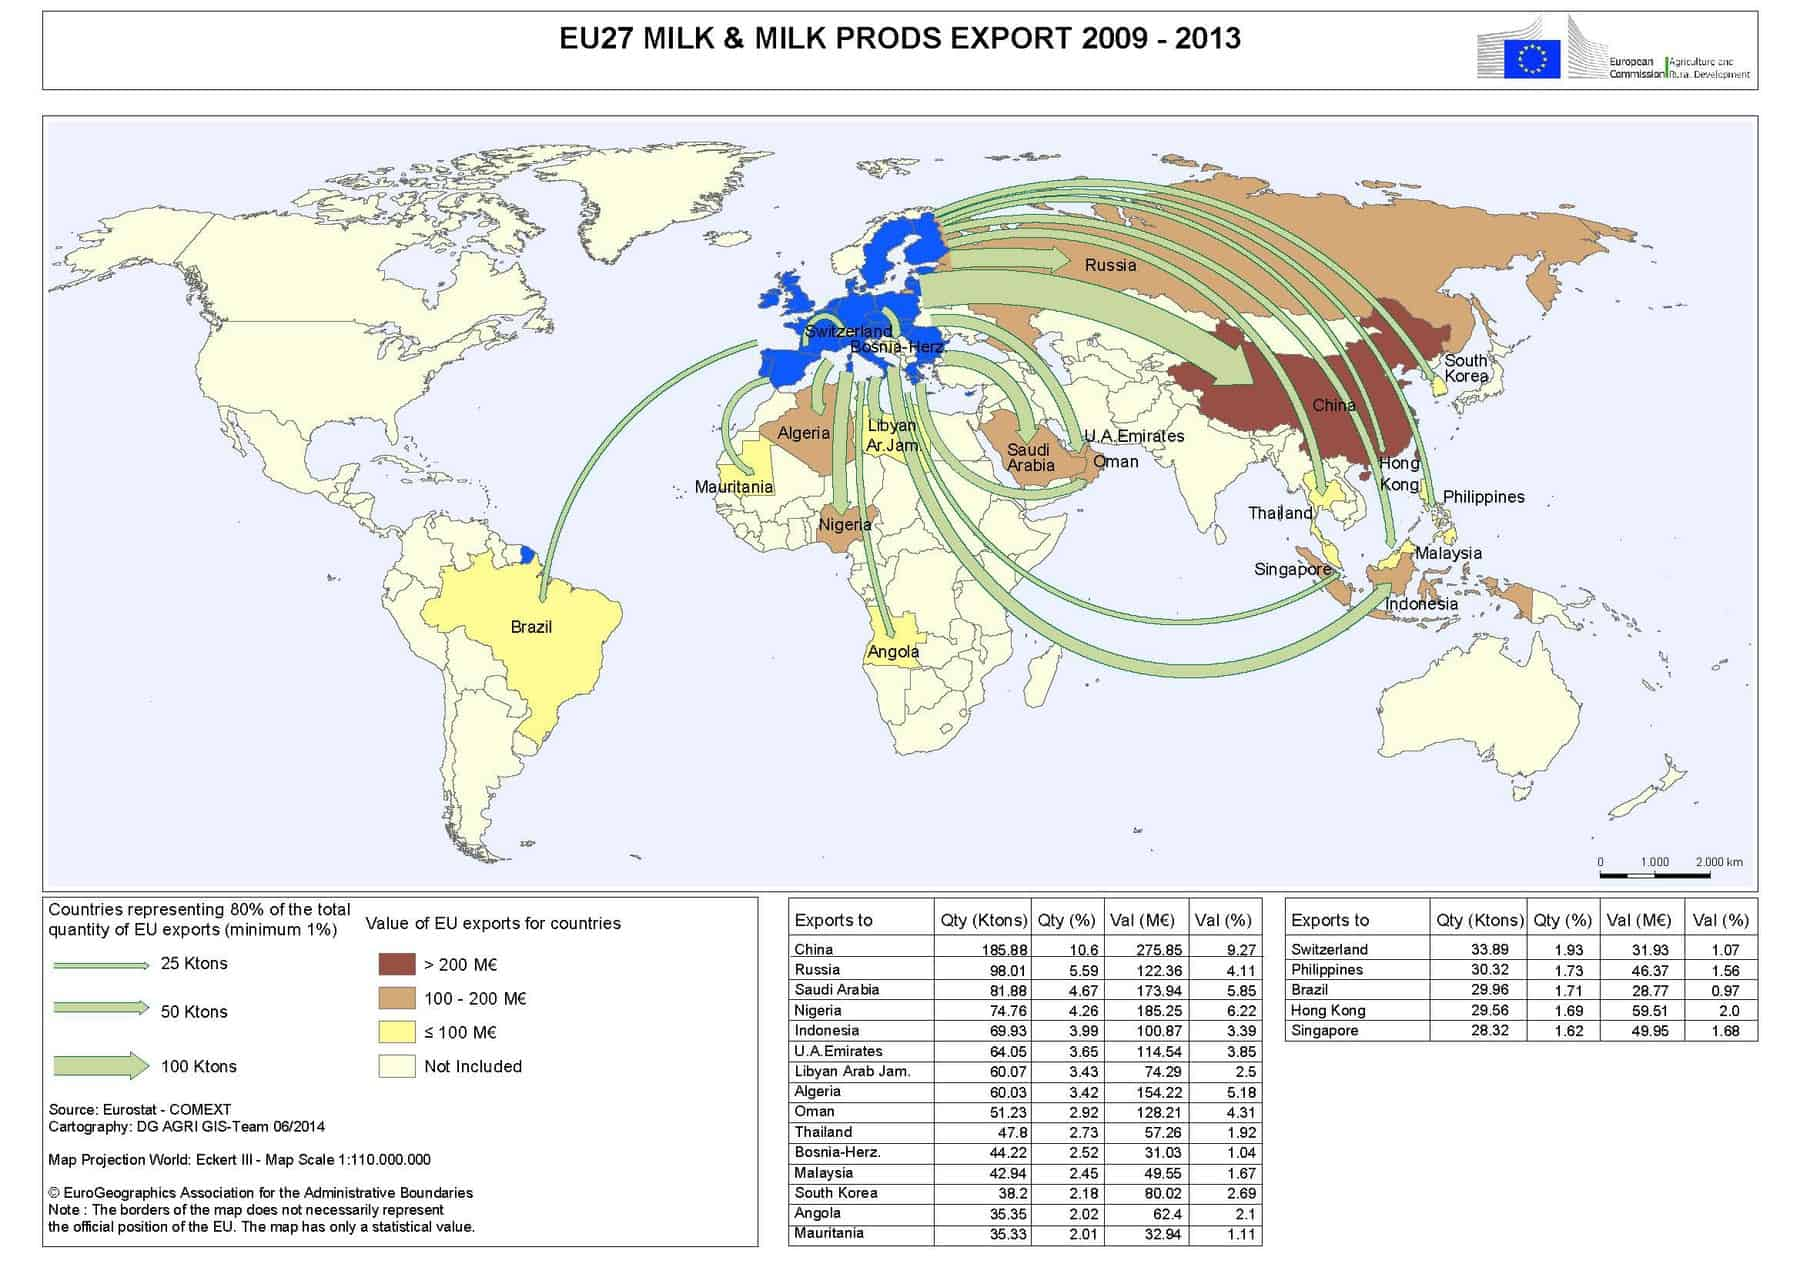 Map #1 Source: EU Agricultural Trade Statistics